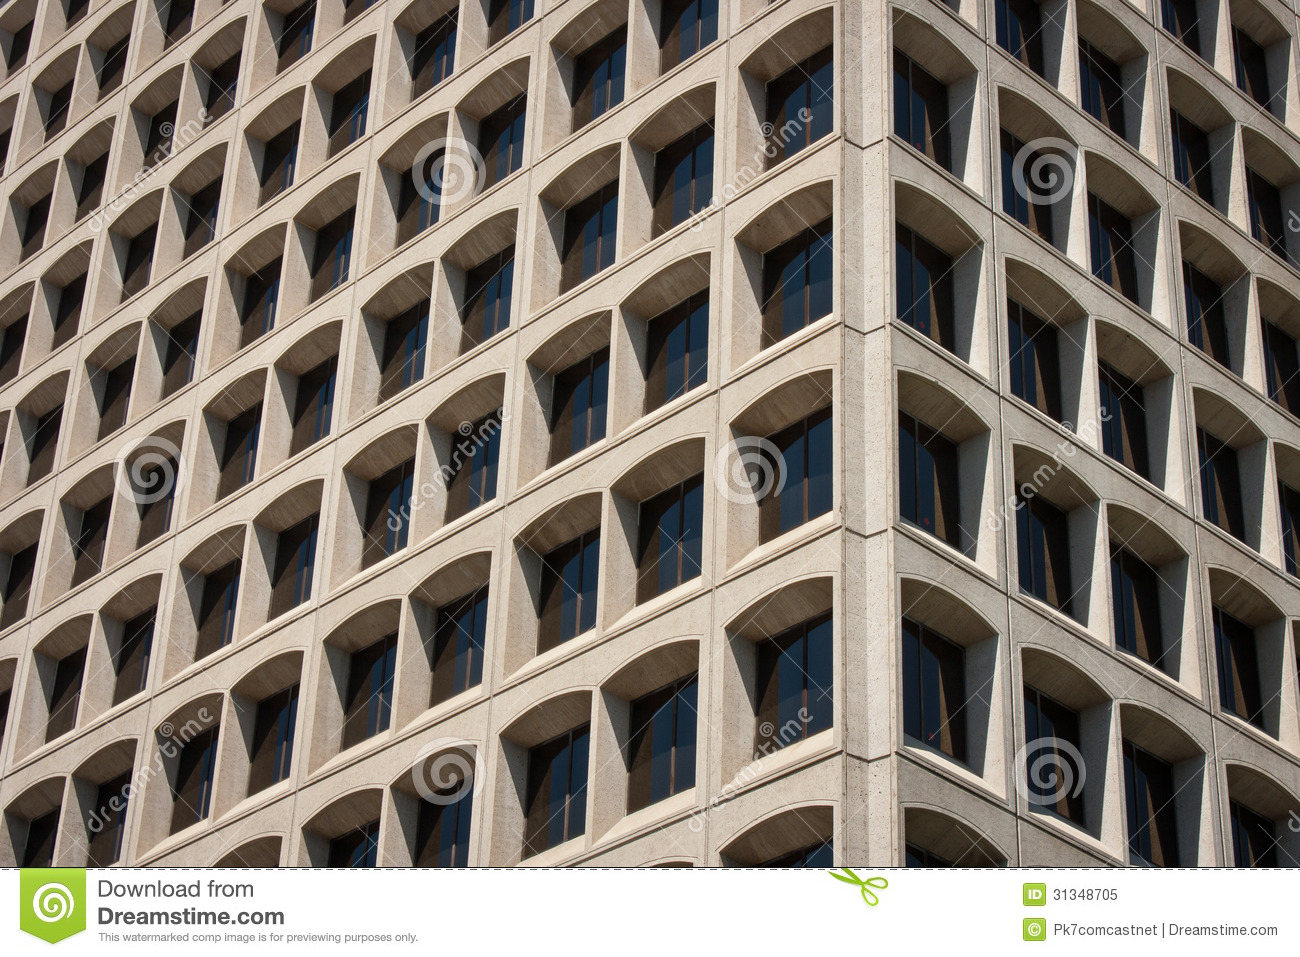 Concrete Building With Windows : Office building corner view royalty free stock photo